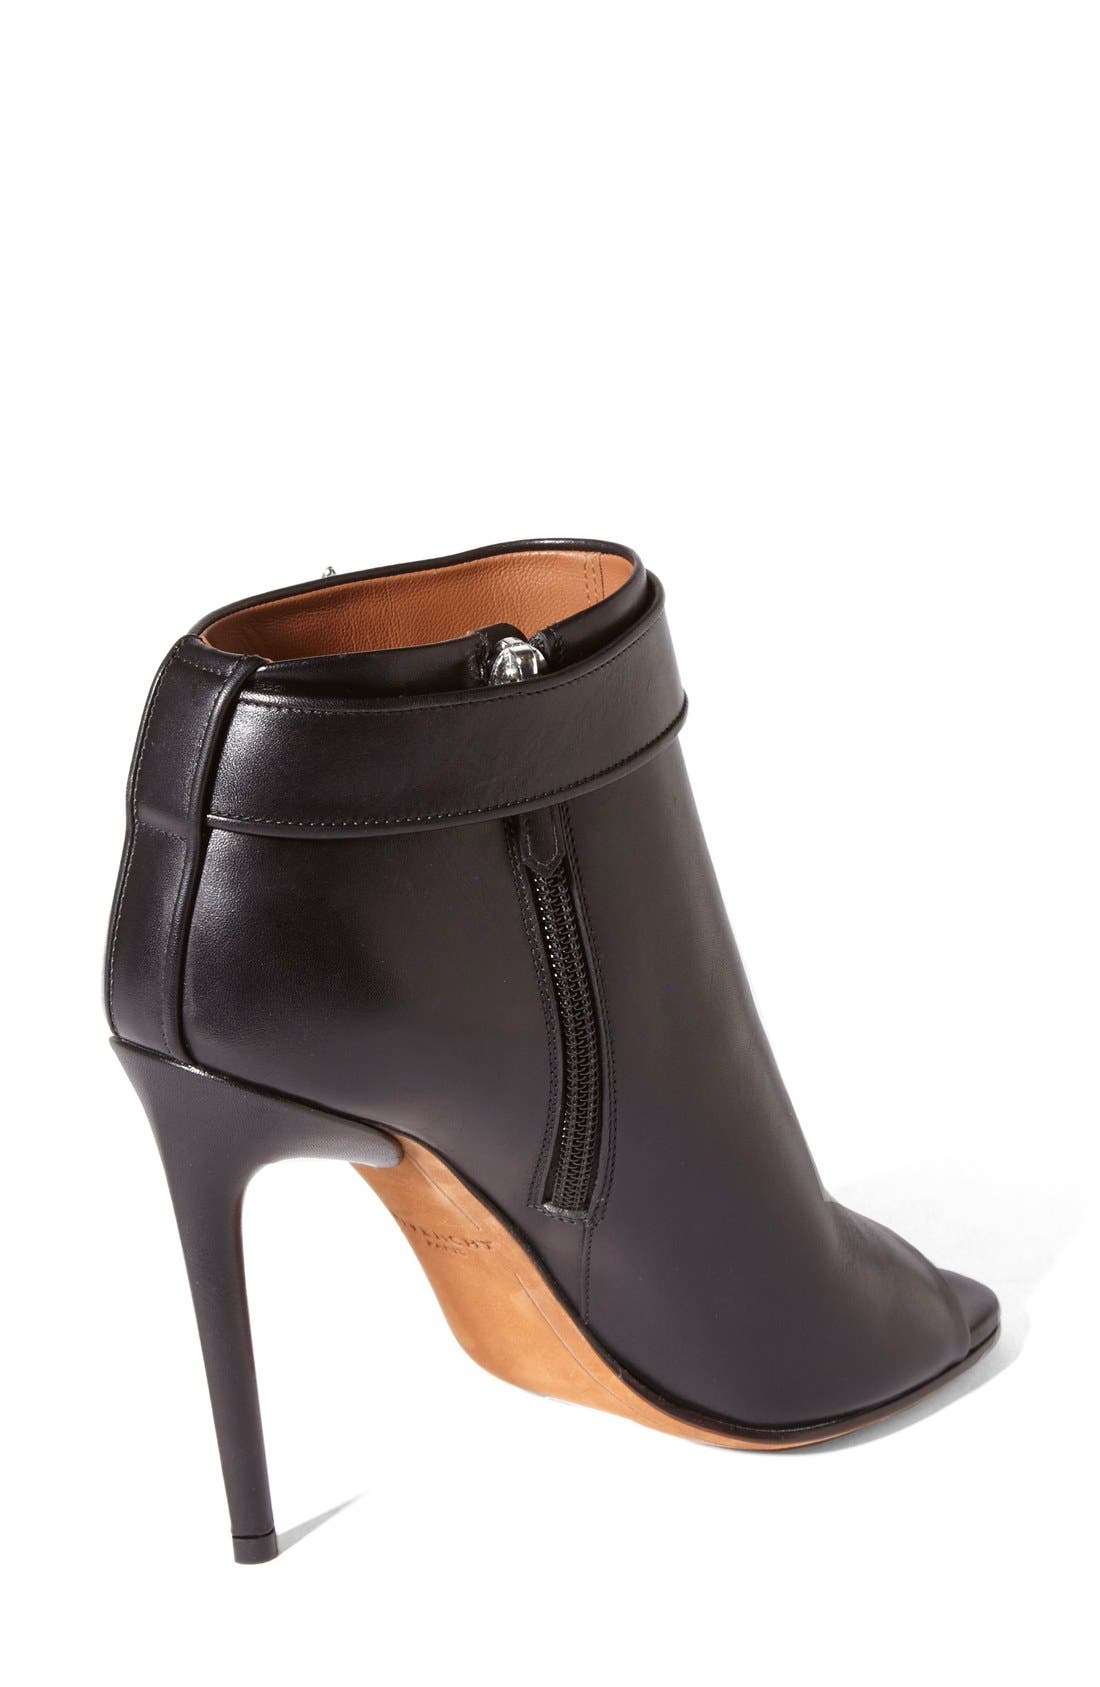 GIVENCHY, 'Ryka' Shark Tooth Open Toe Bootie, Alternate thumbnail 2, color, 001